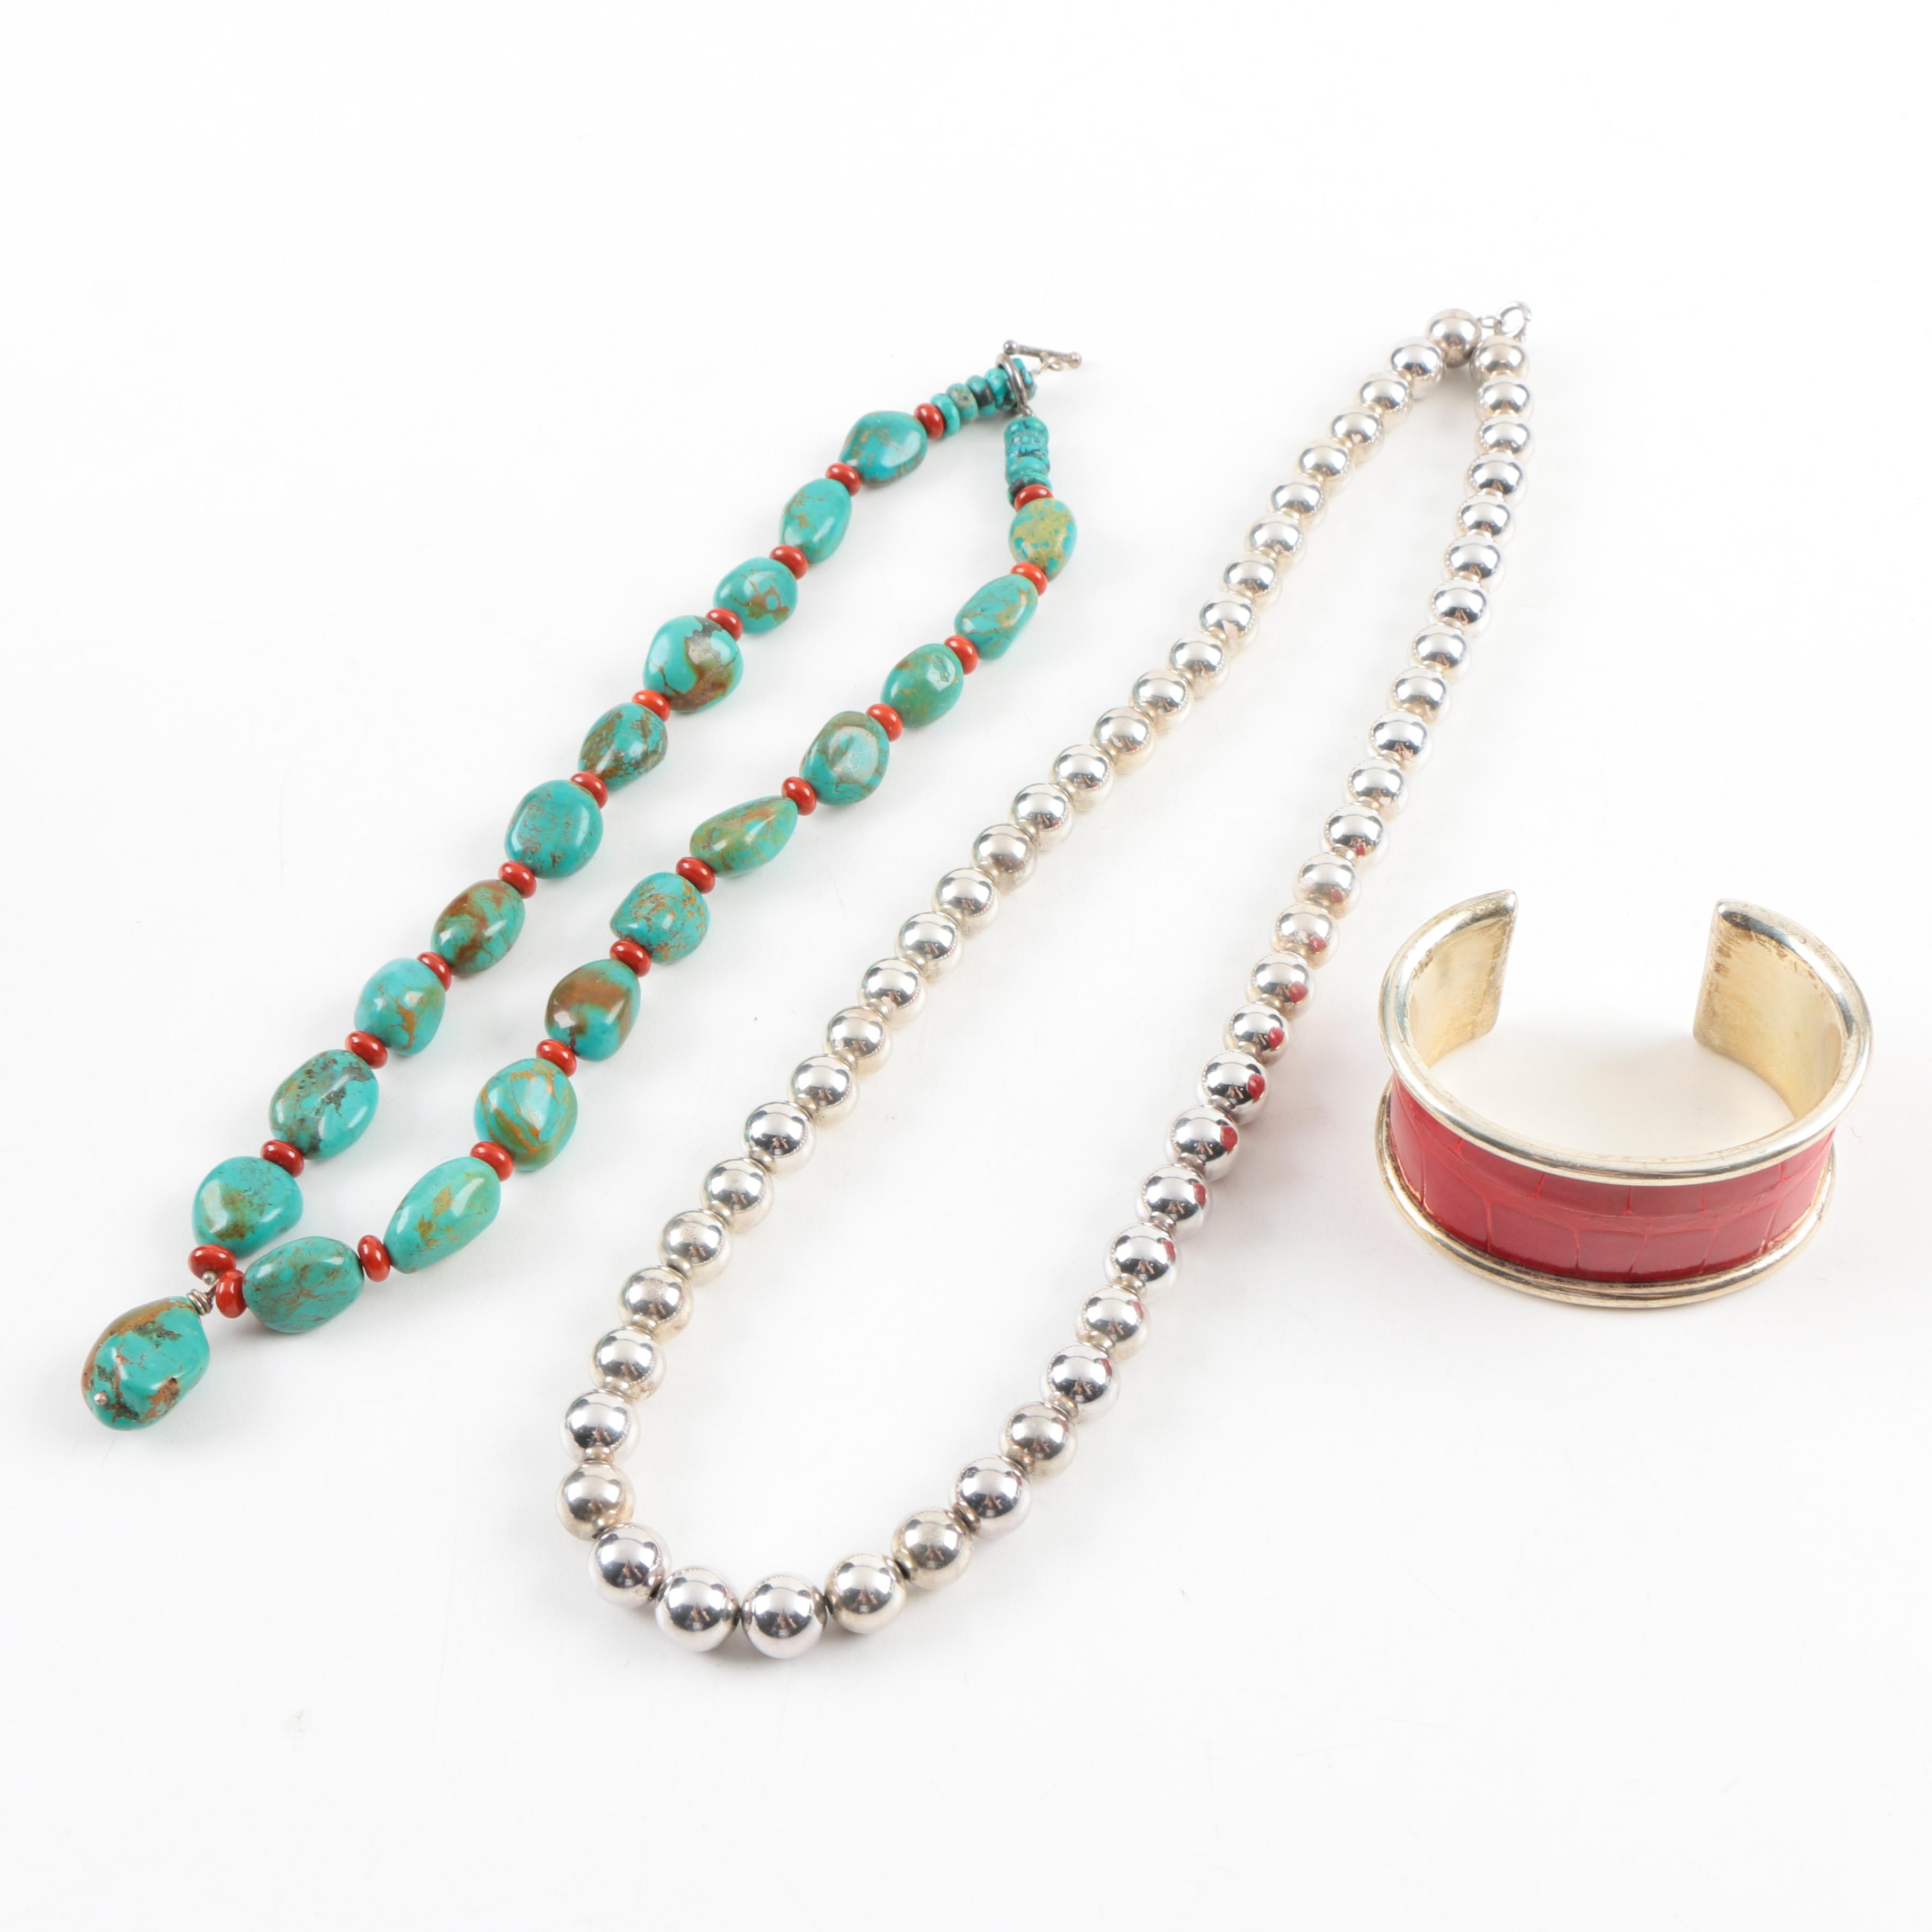 Sterling Silver Beaded Necklaces and a Bracelet